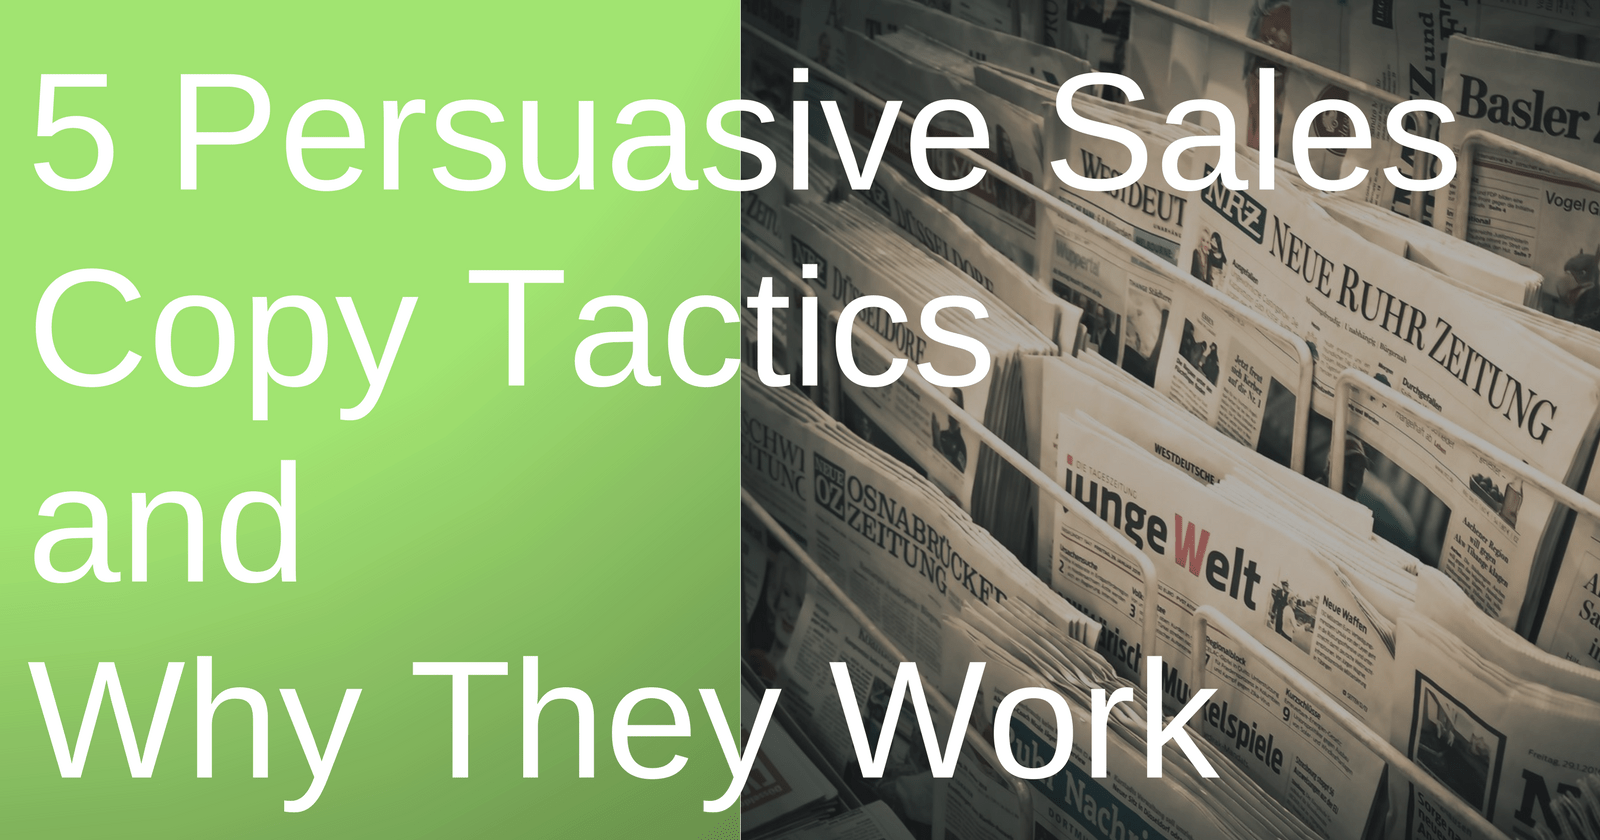 5 Persuasive Sales Copy Tactics & Why They Work by @malleeblue